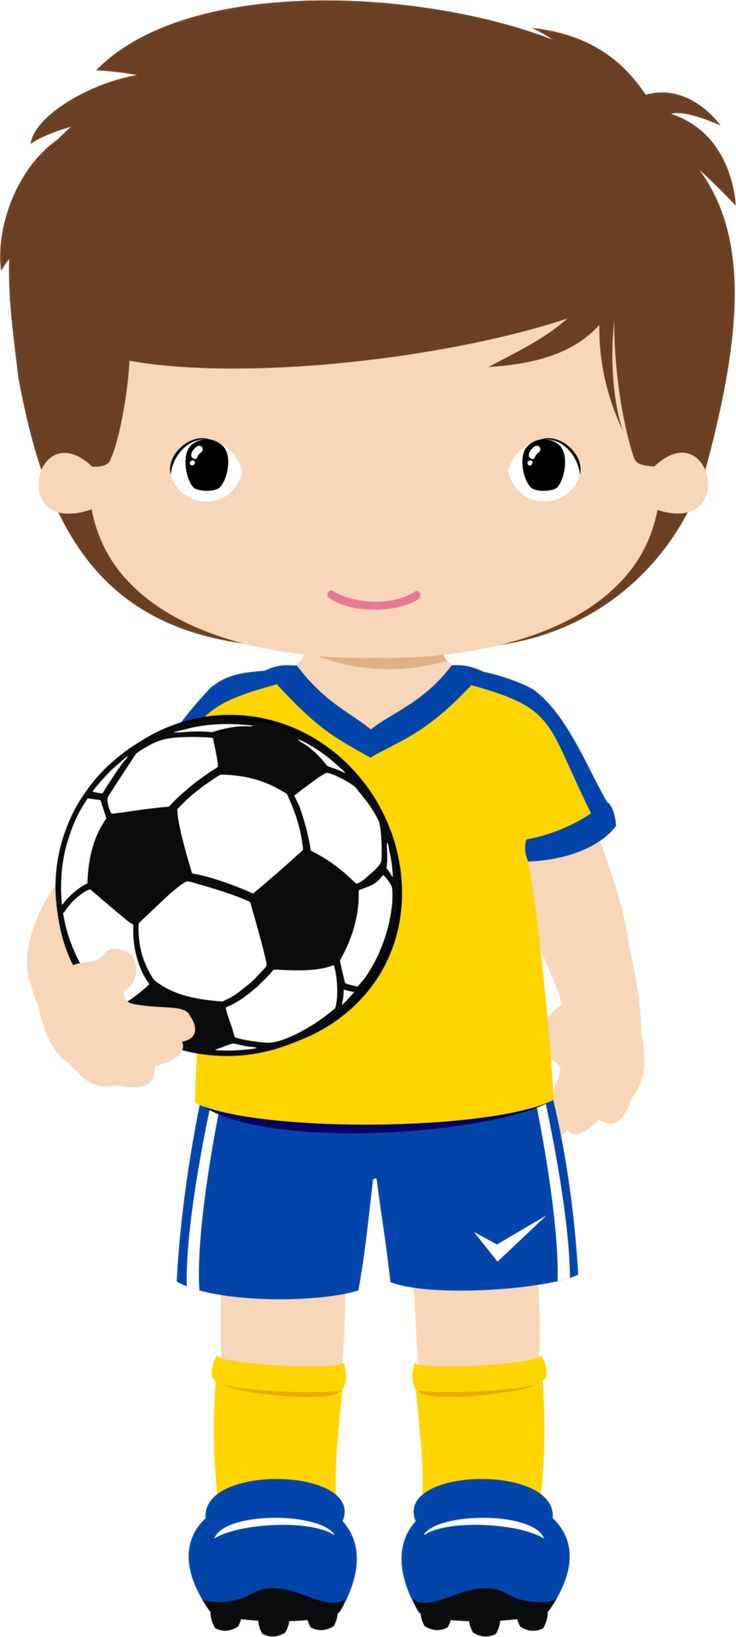 418 best sports gin stica images on pinterest applique rh pinterest com soccer ball clipart free soccer clipart free download